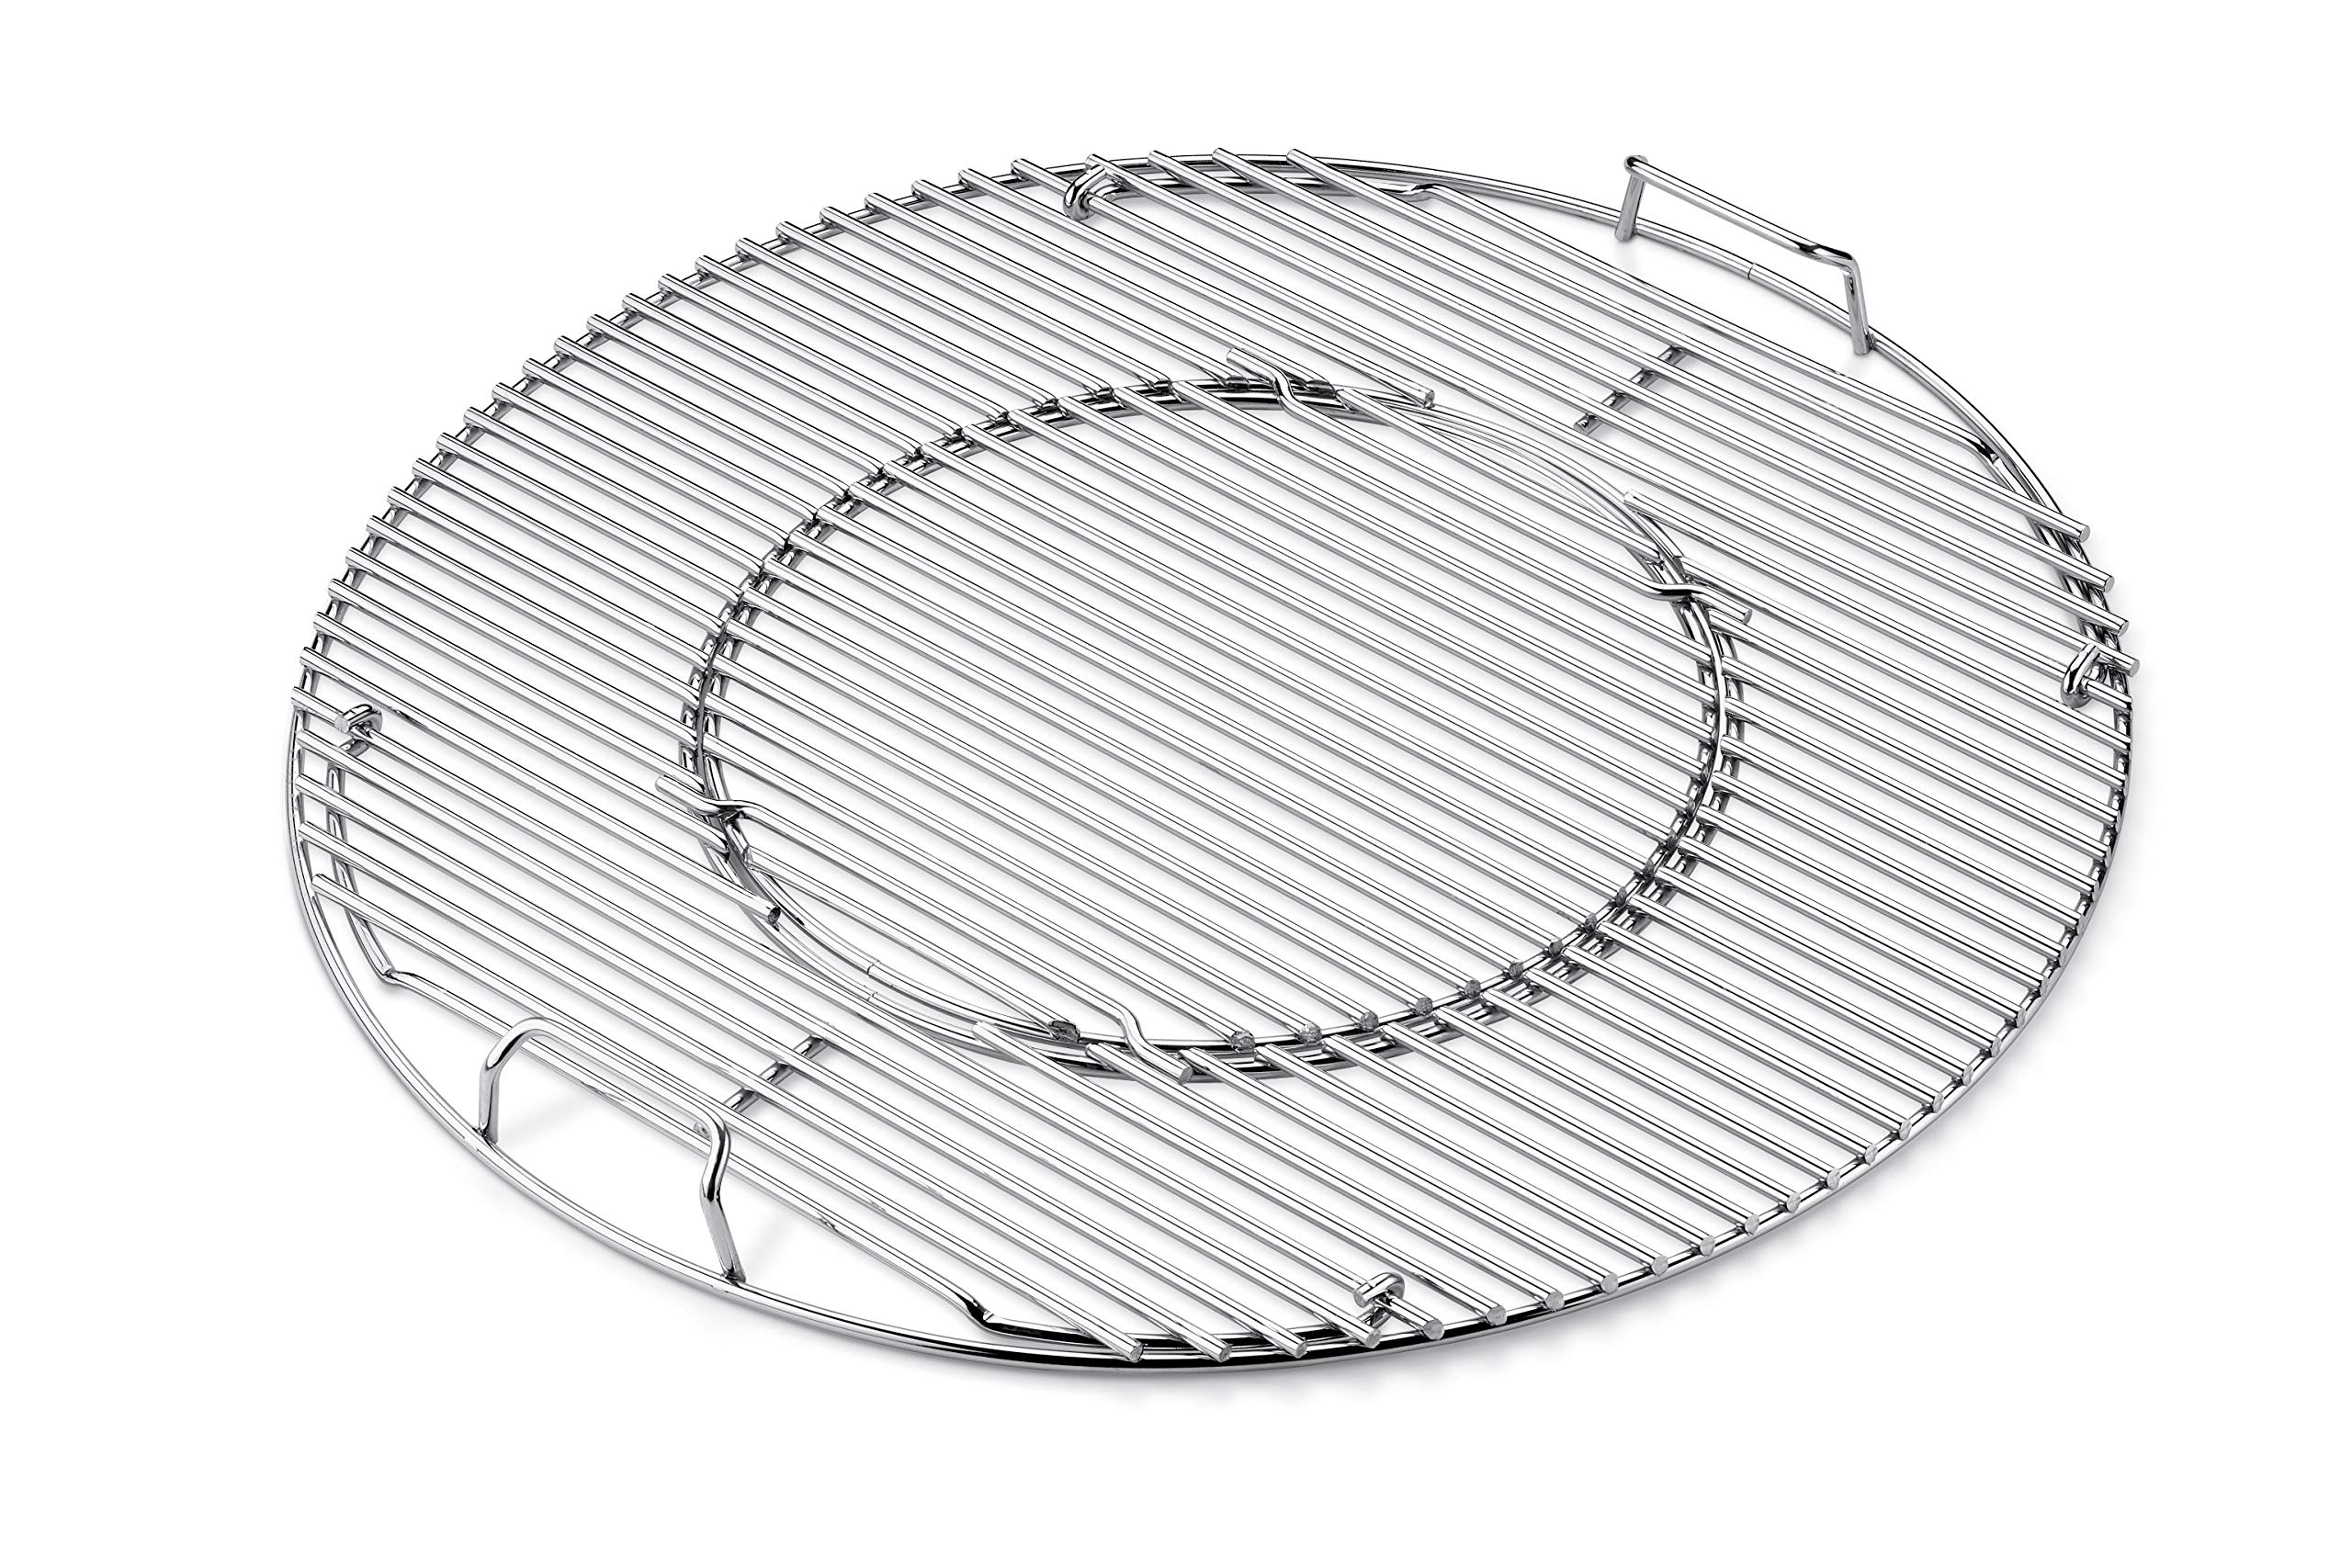 Weber 8835 Gourmet BBQ System Hinged Cooking Grate by Weber